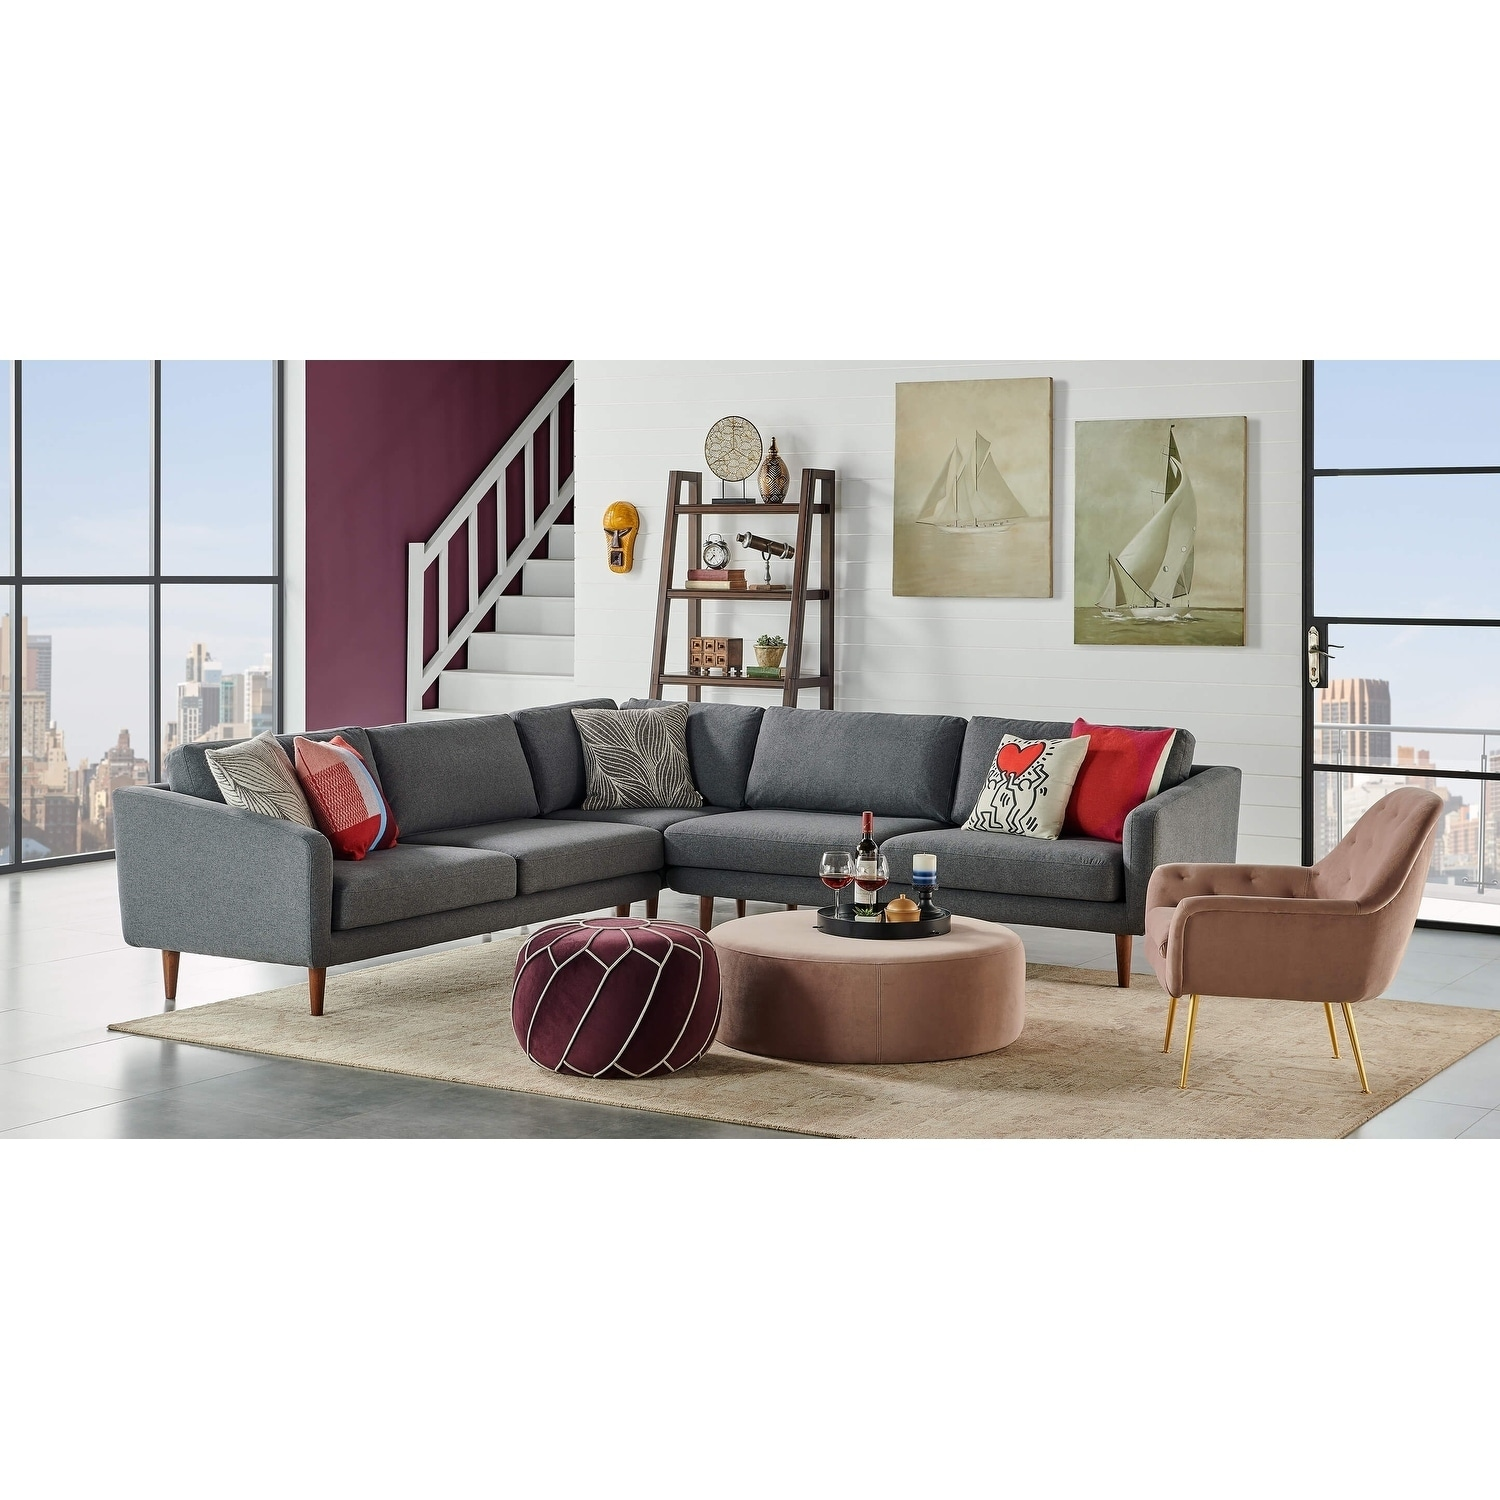 Fantastic Sectional Sofa Living Room Furniture Find Great Furniture Pabps2019 Chair Design Images Pabps2019Com